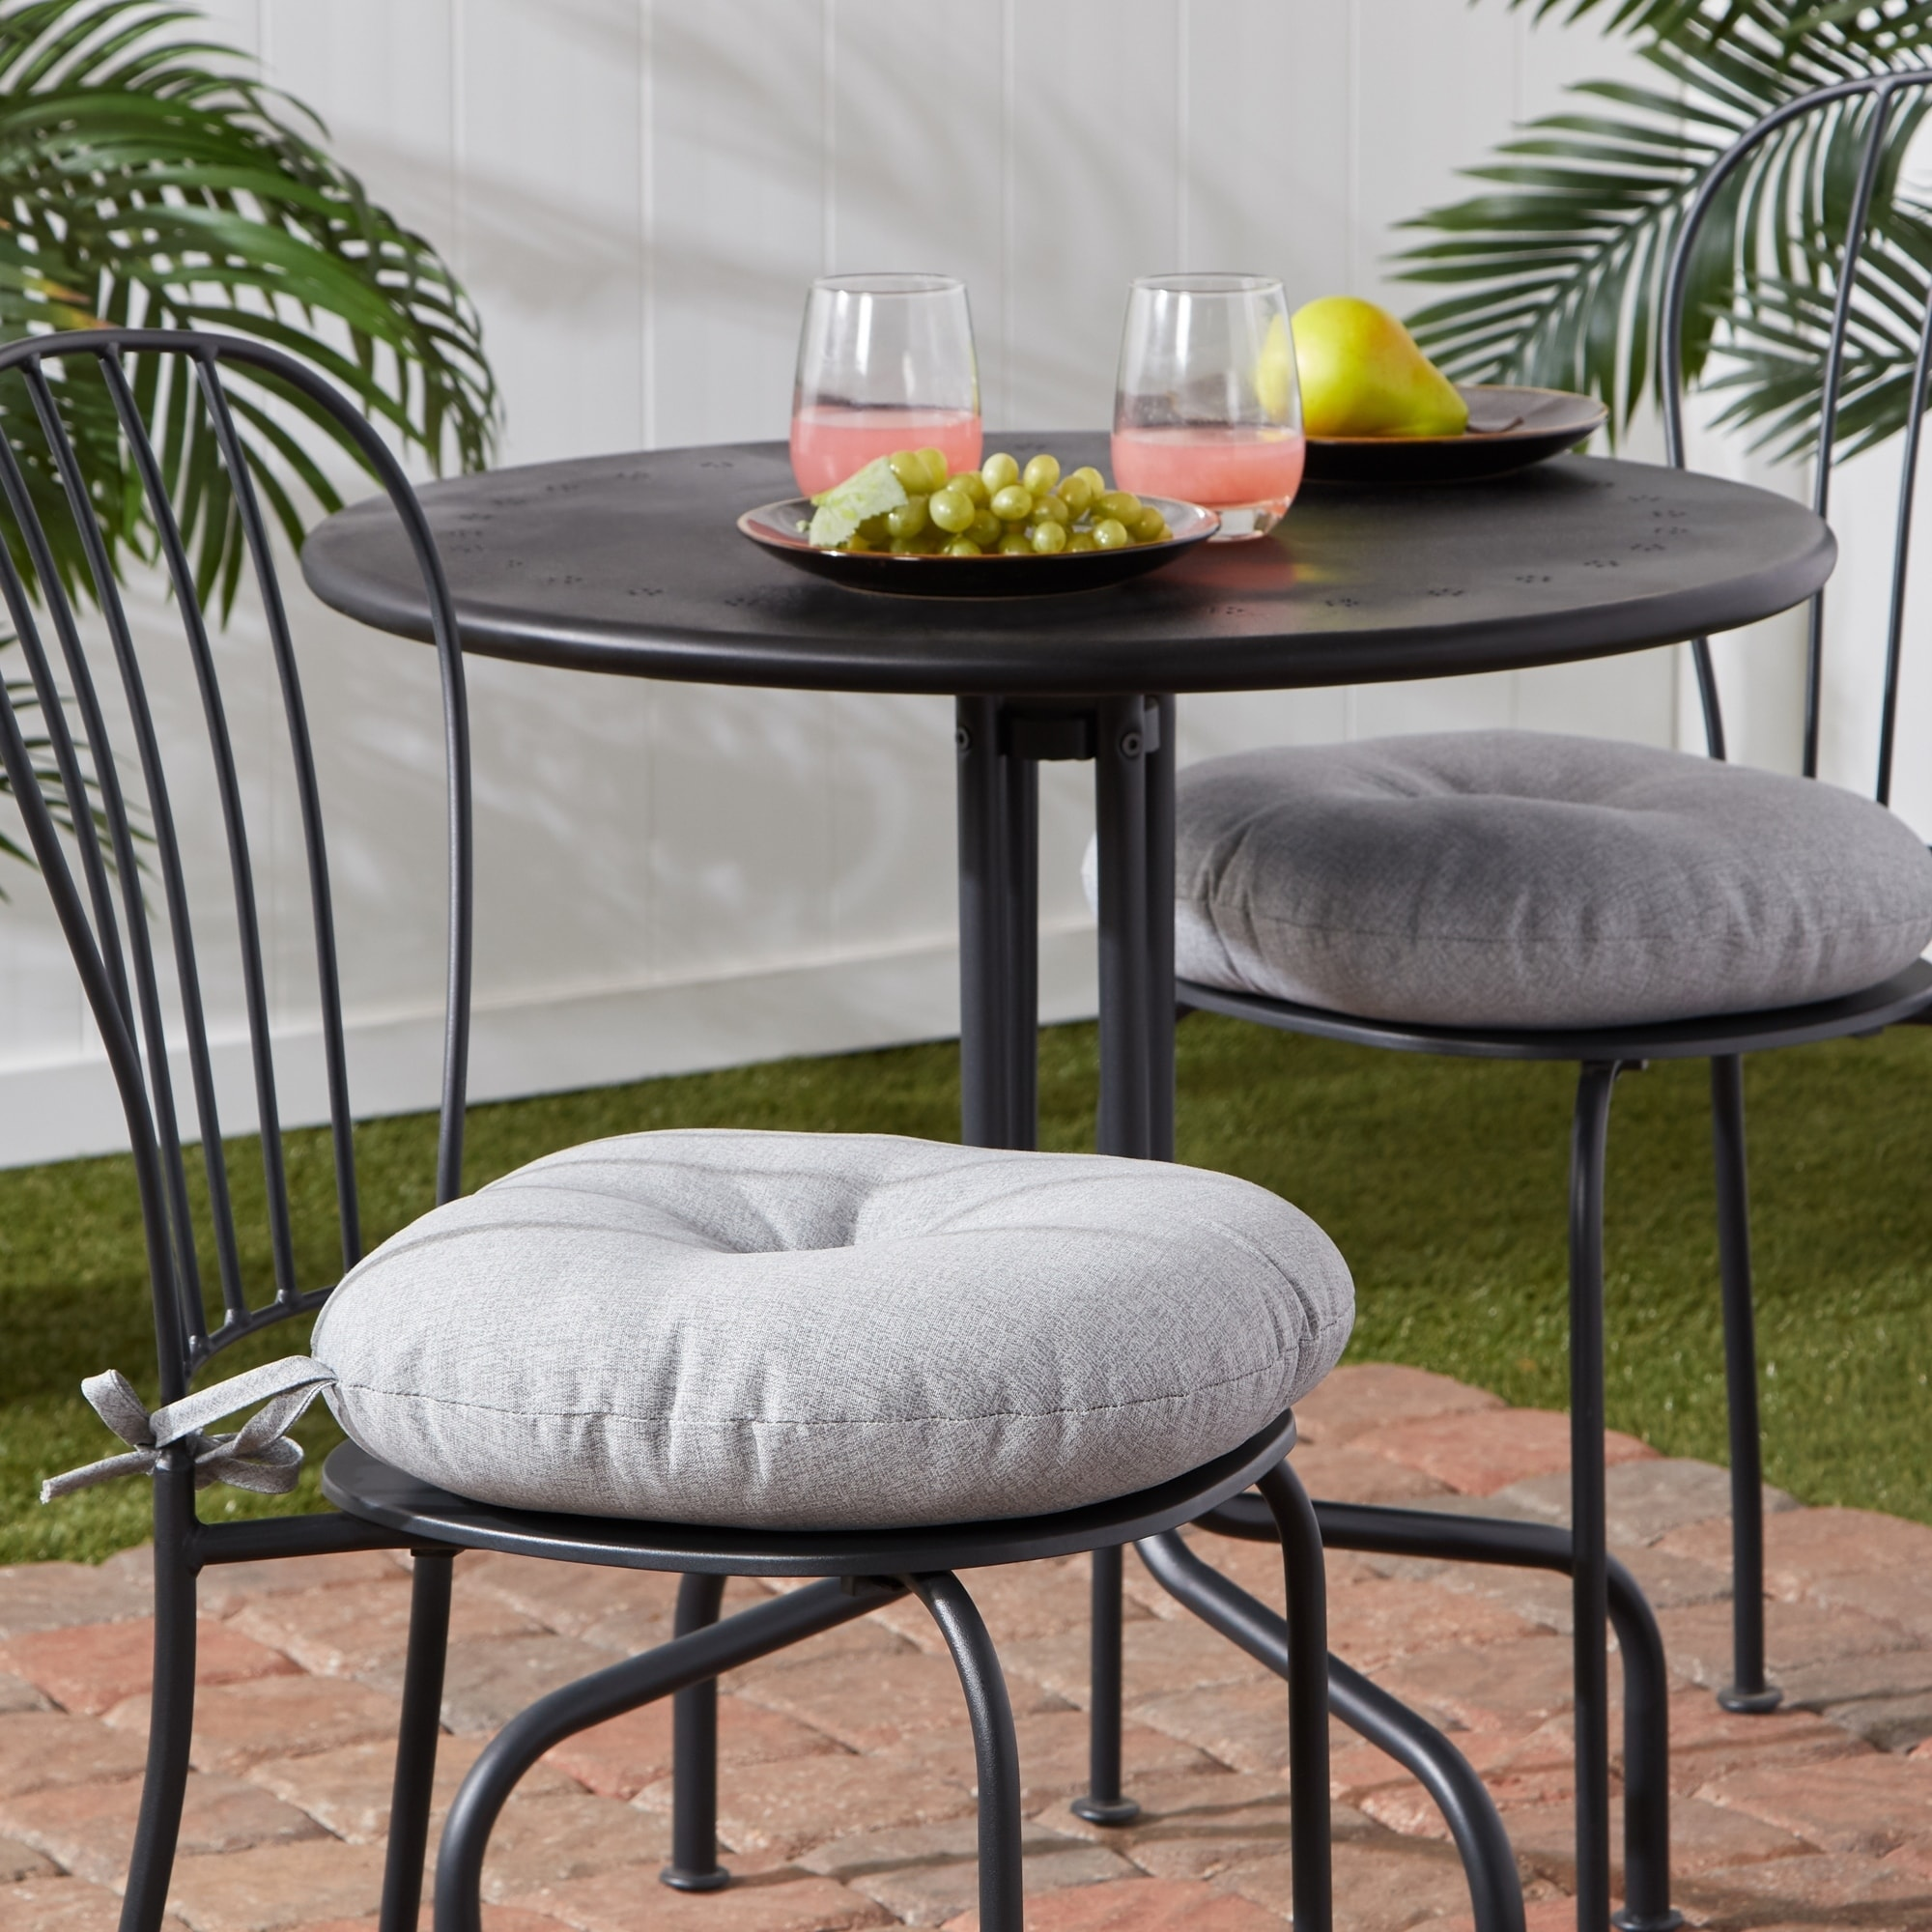 Palm Leaves White Outdoor 15 Inch Bistro Chair Cushion Set Of 2 Overstock 30757669